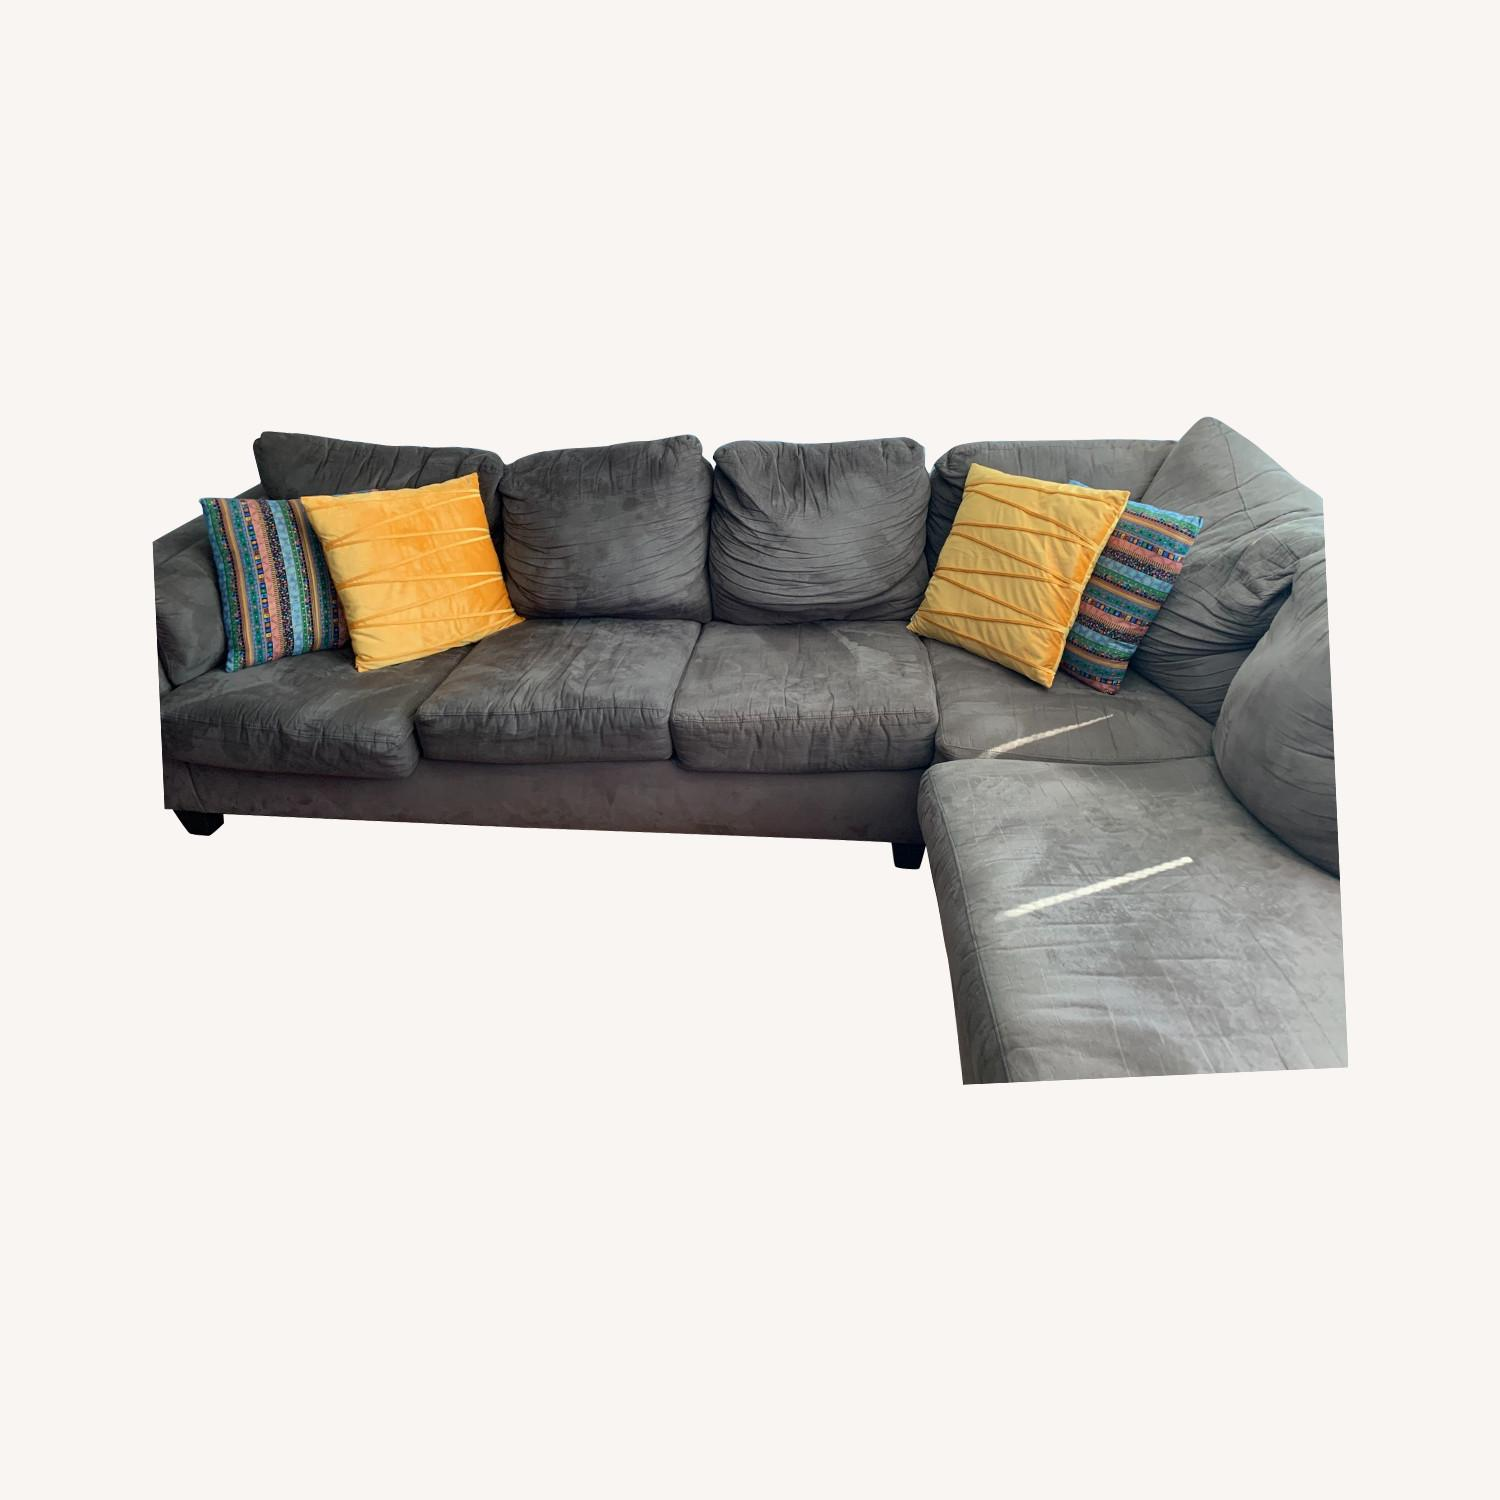 Bob's Discount Furniture Comfy Sectional - image-0